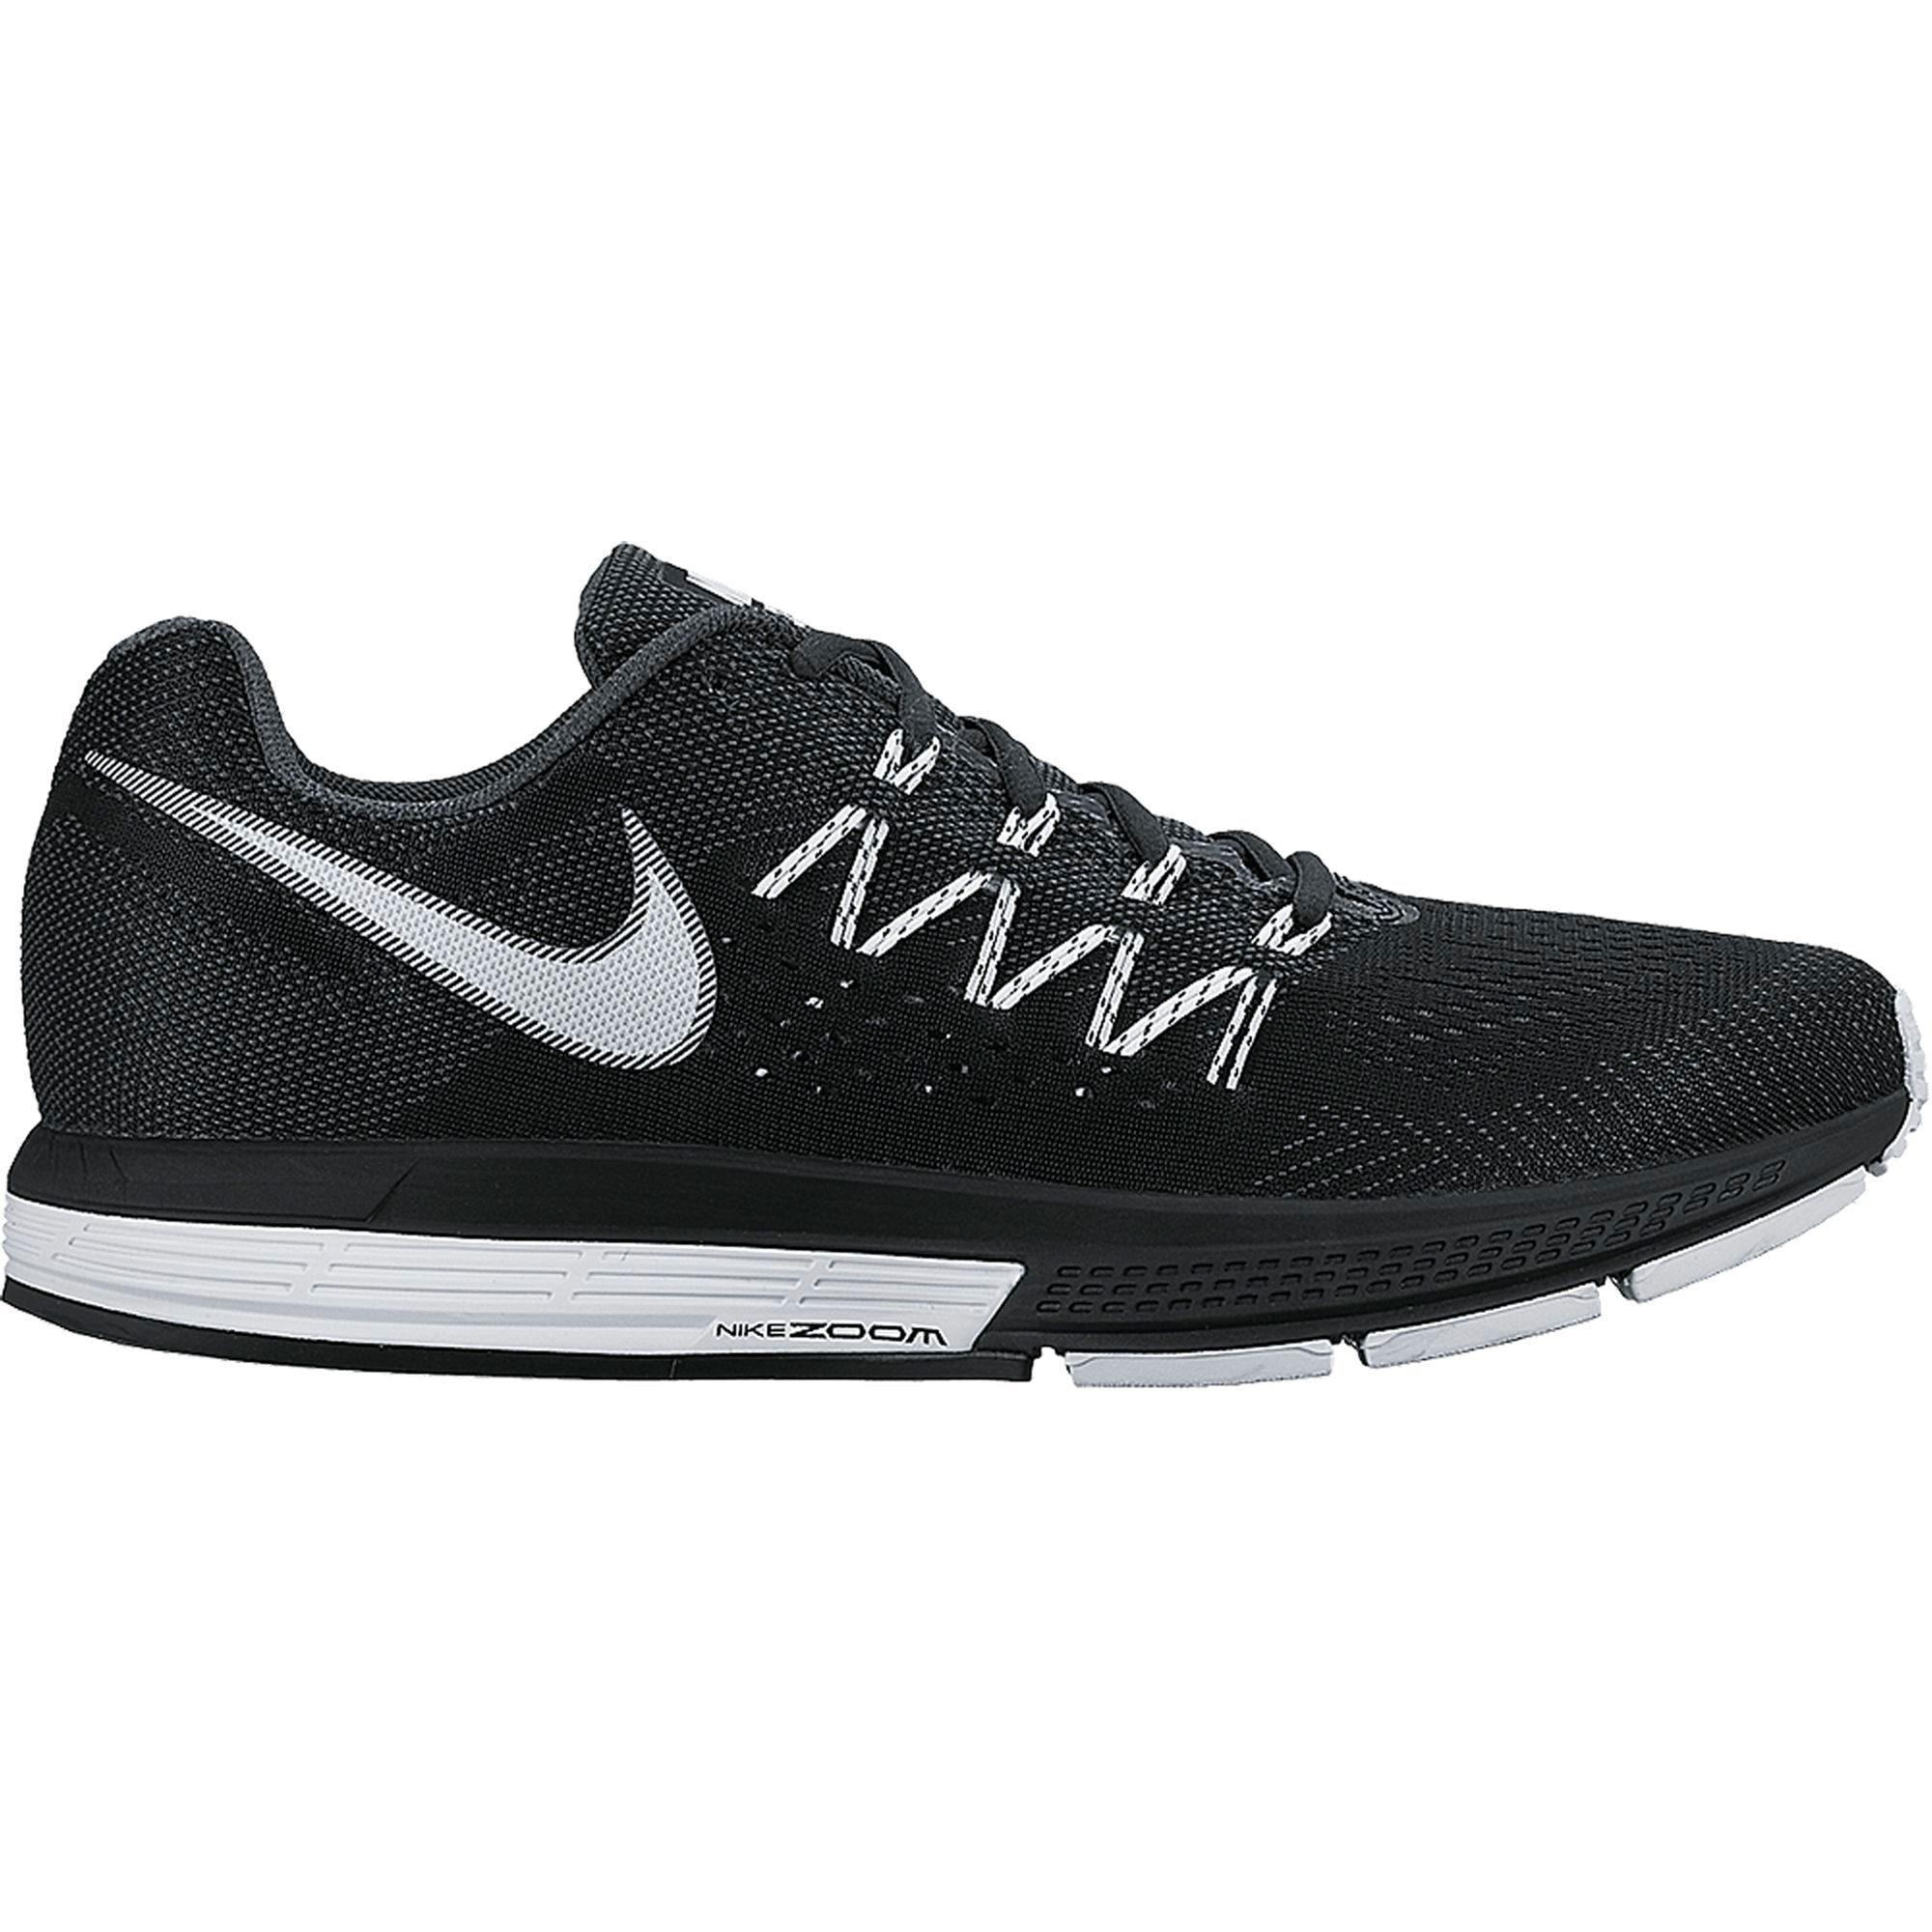 wiggle nike air zoom vomero 10 shoes ho15 cushion running shoes. Black Bedroom Furniture Sets. Home Design Ideas